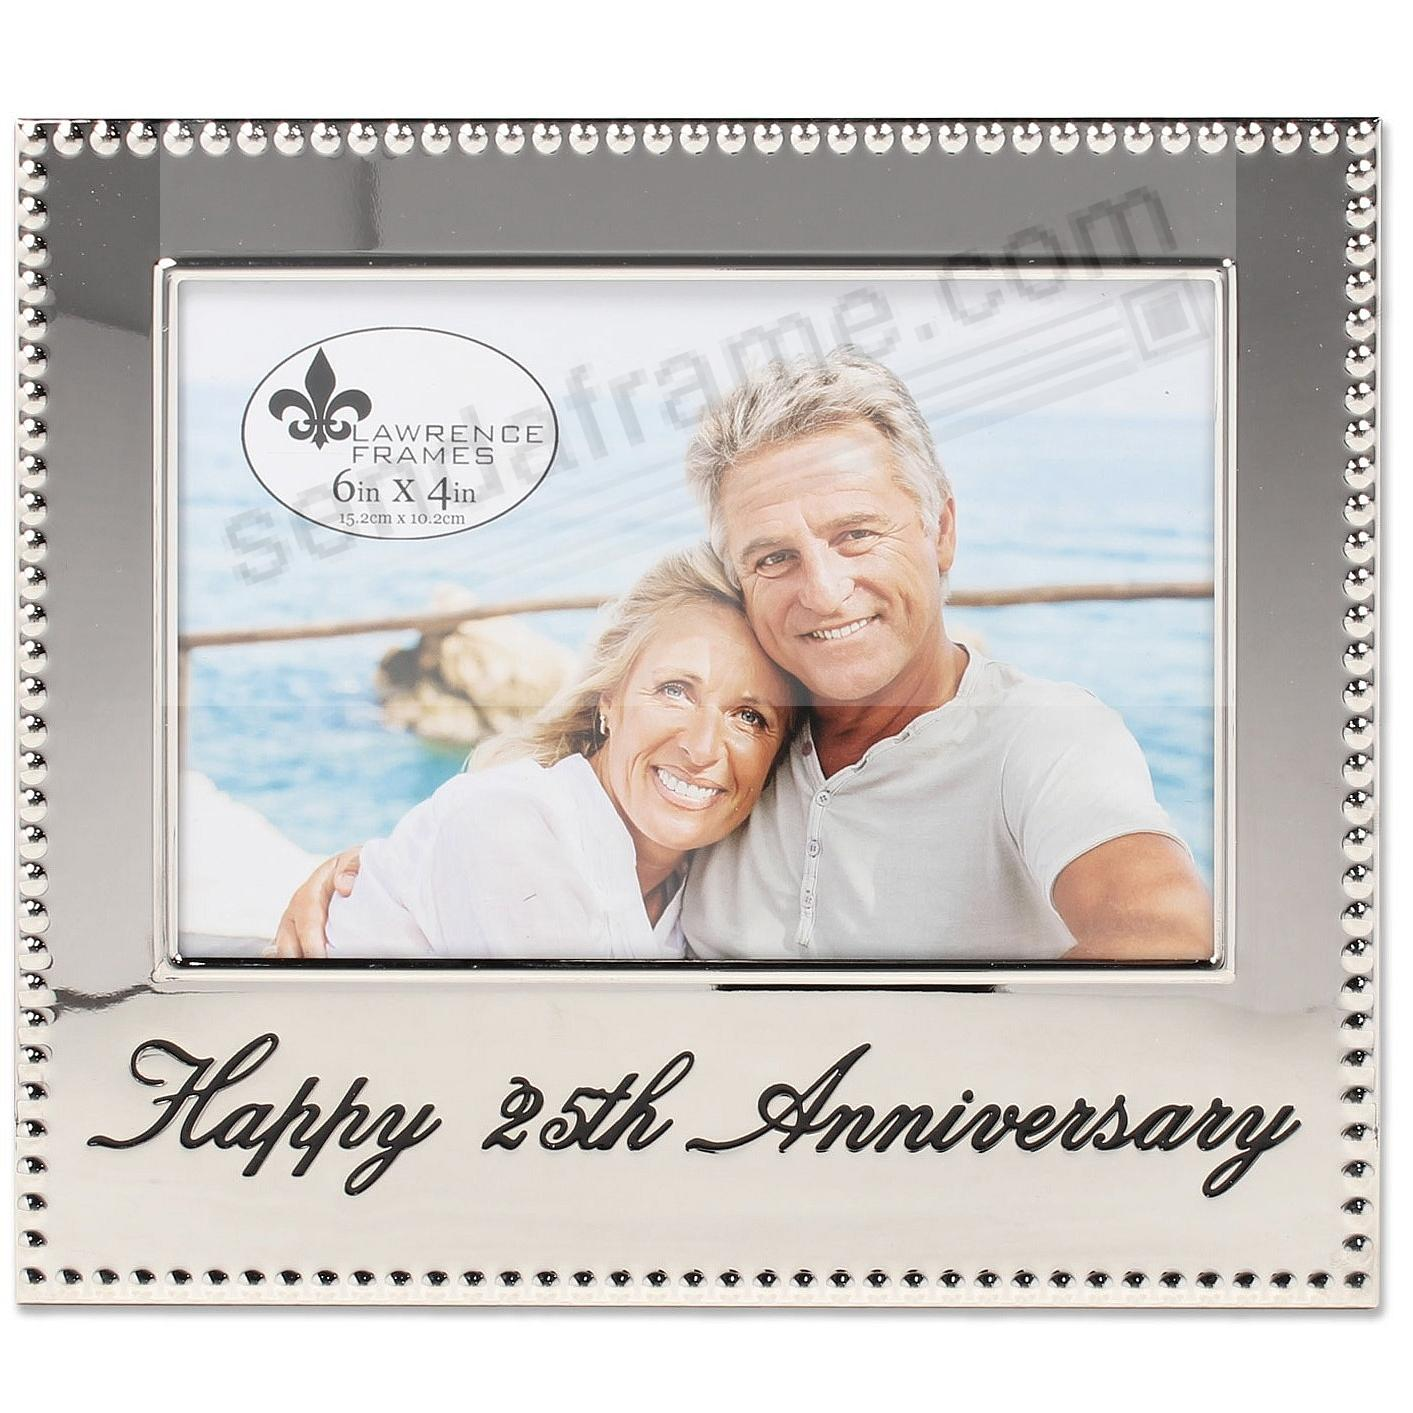 HAPPY 25th ANNIVERSARY special engraved celebration frame